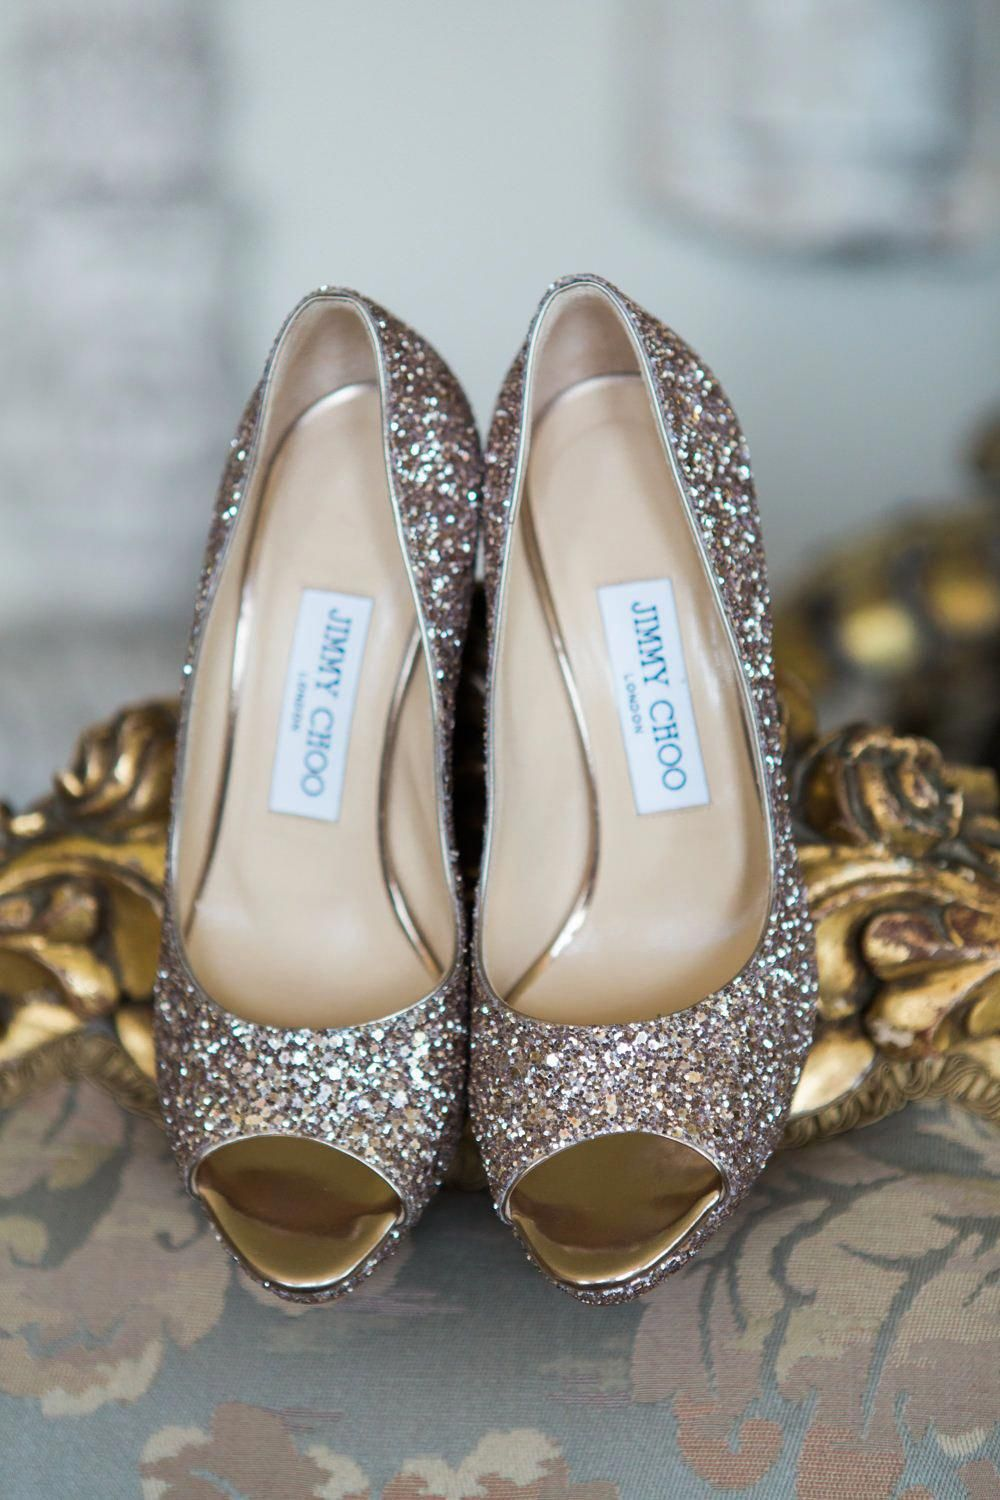 26728a3e5d42 Jimmy Choo Sparkly Shoes